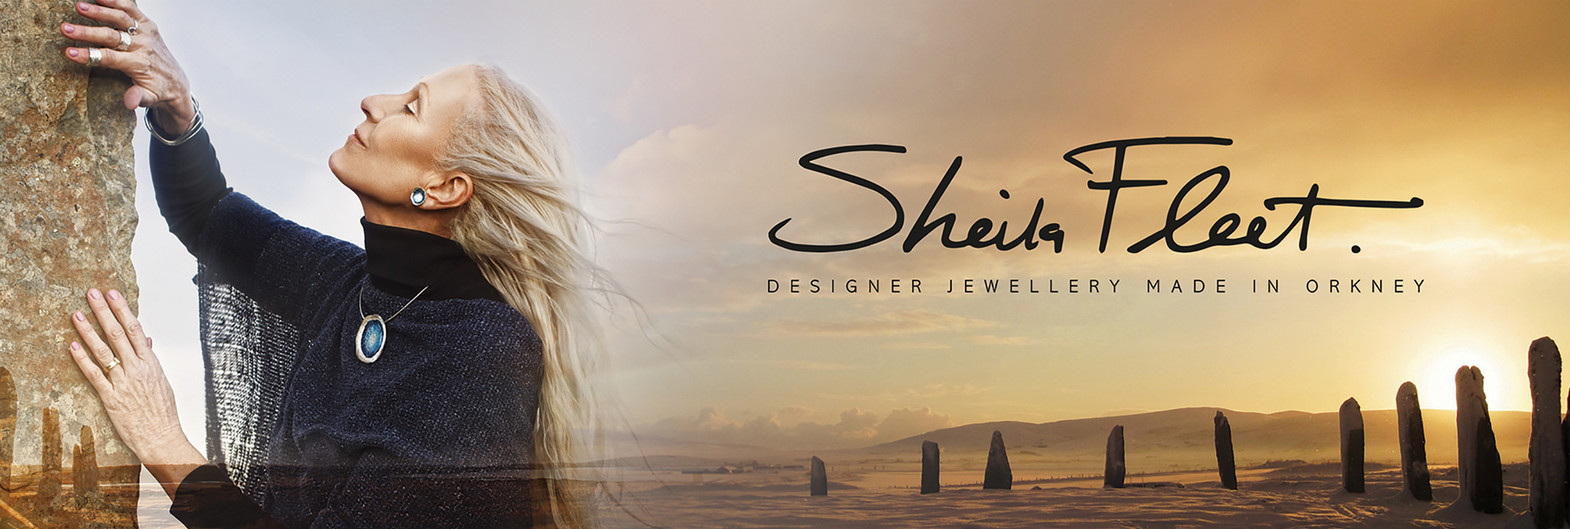 Sheila Fleet Jewellery Will Make Your Mother's Day